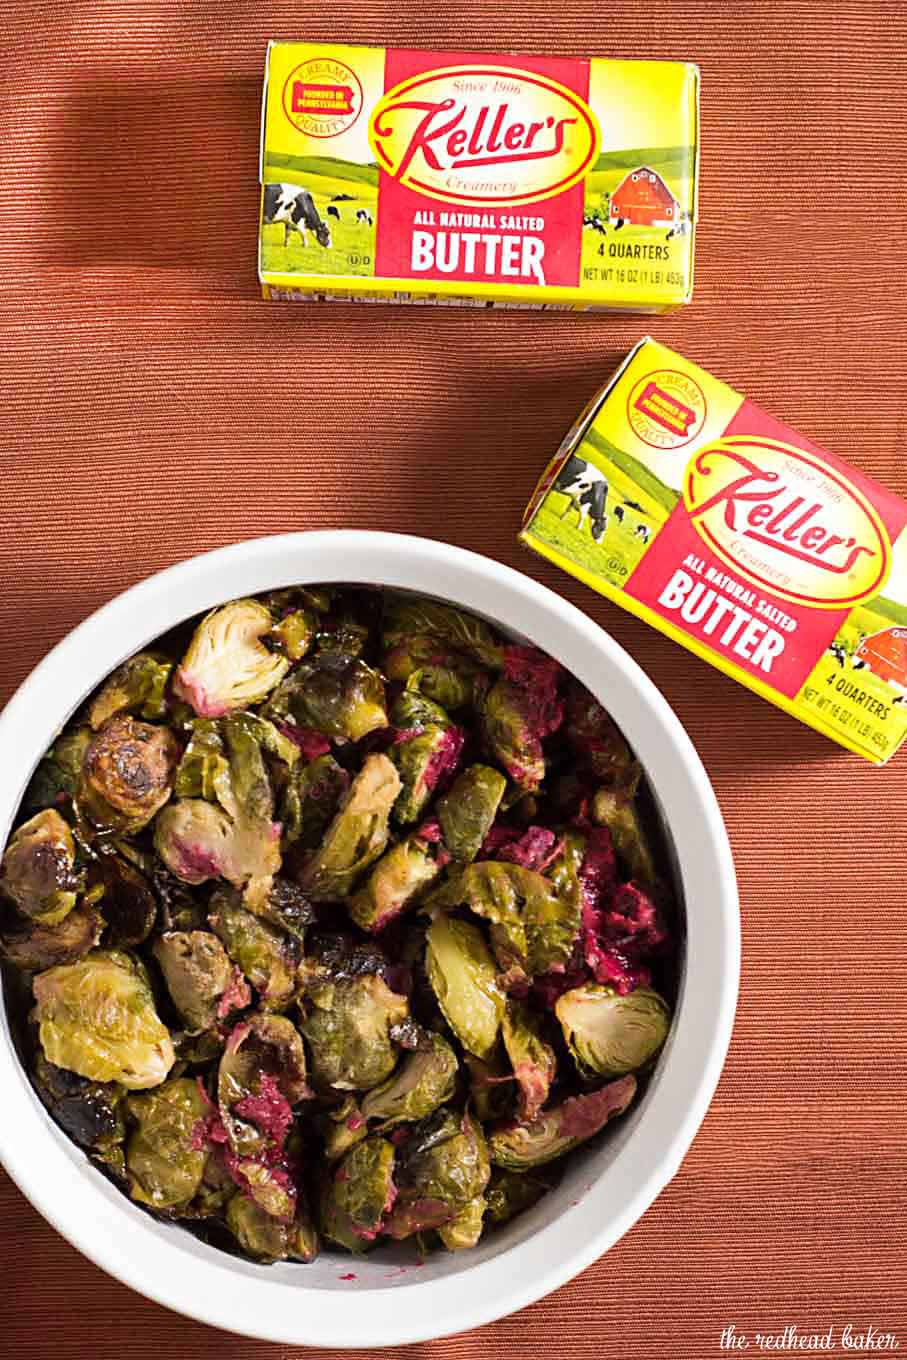 Roasted brussels sprouts are tender and sweet, and tossing them with a cranberry brown butter sauce adds a savory-sweet flavor.